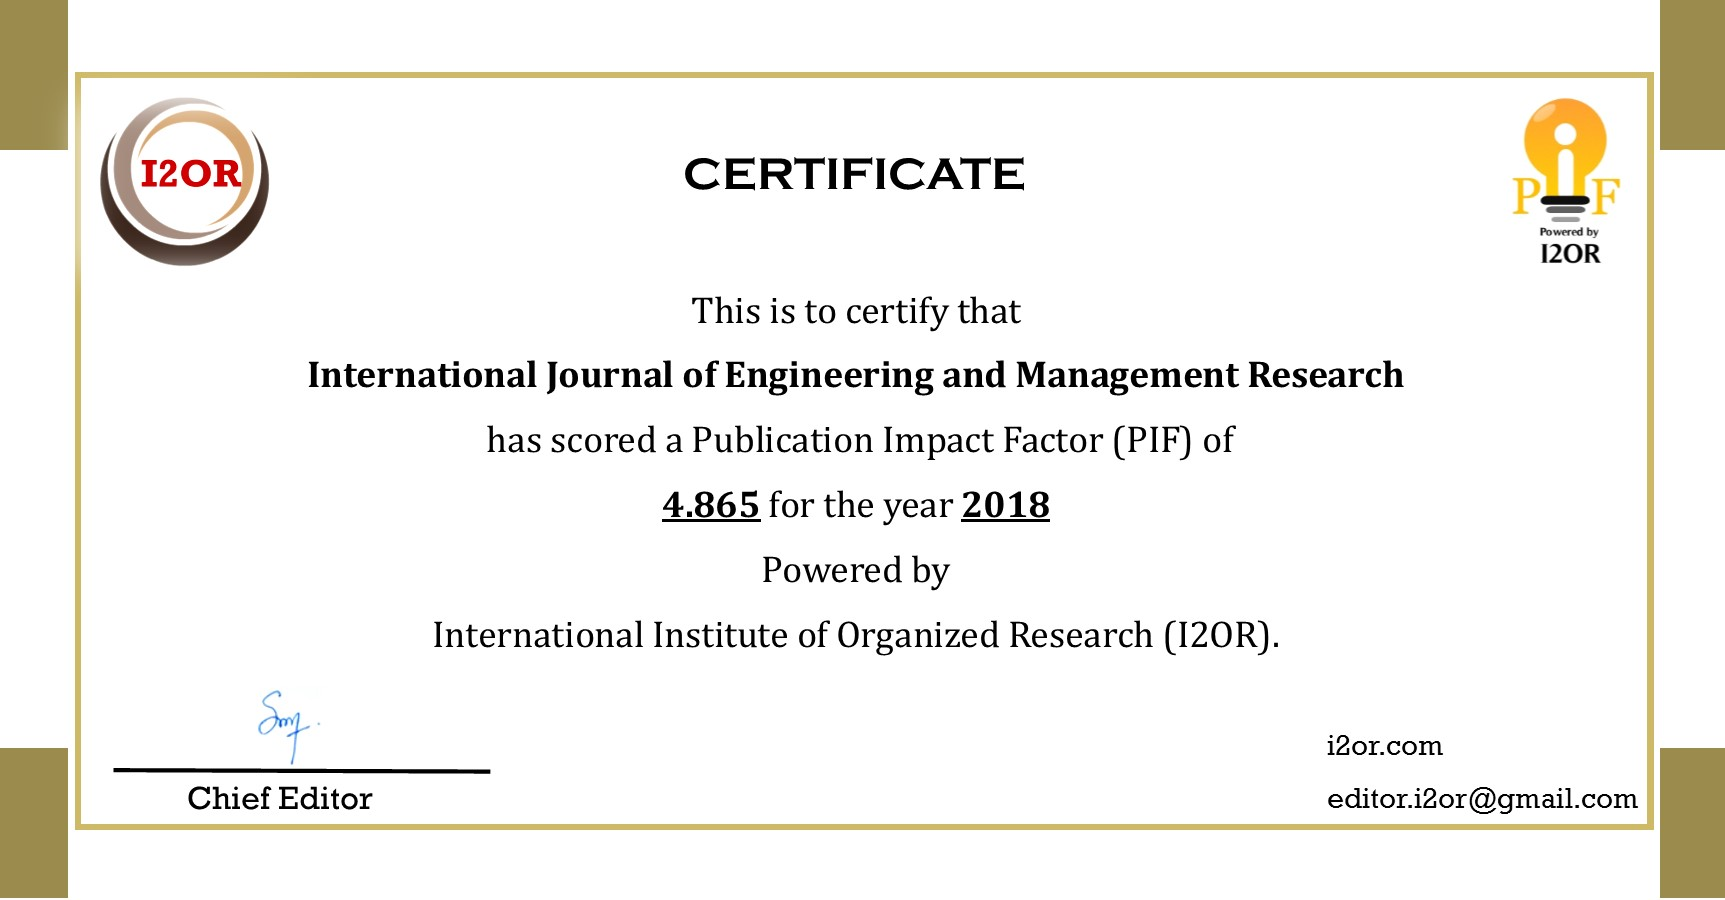 International Journal of Engineering and Management Research (IJEMR